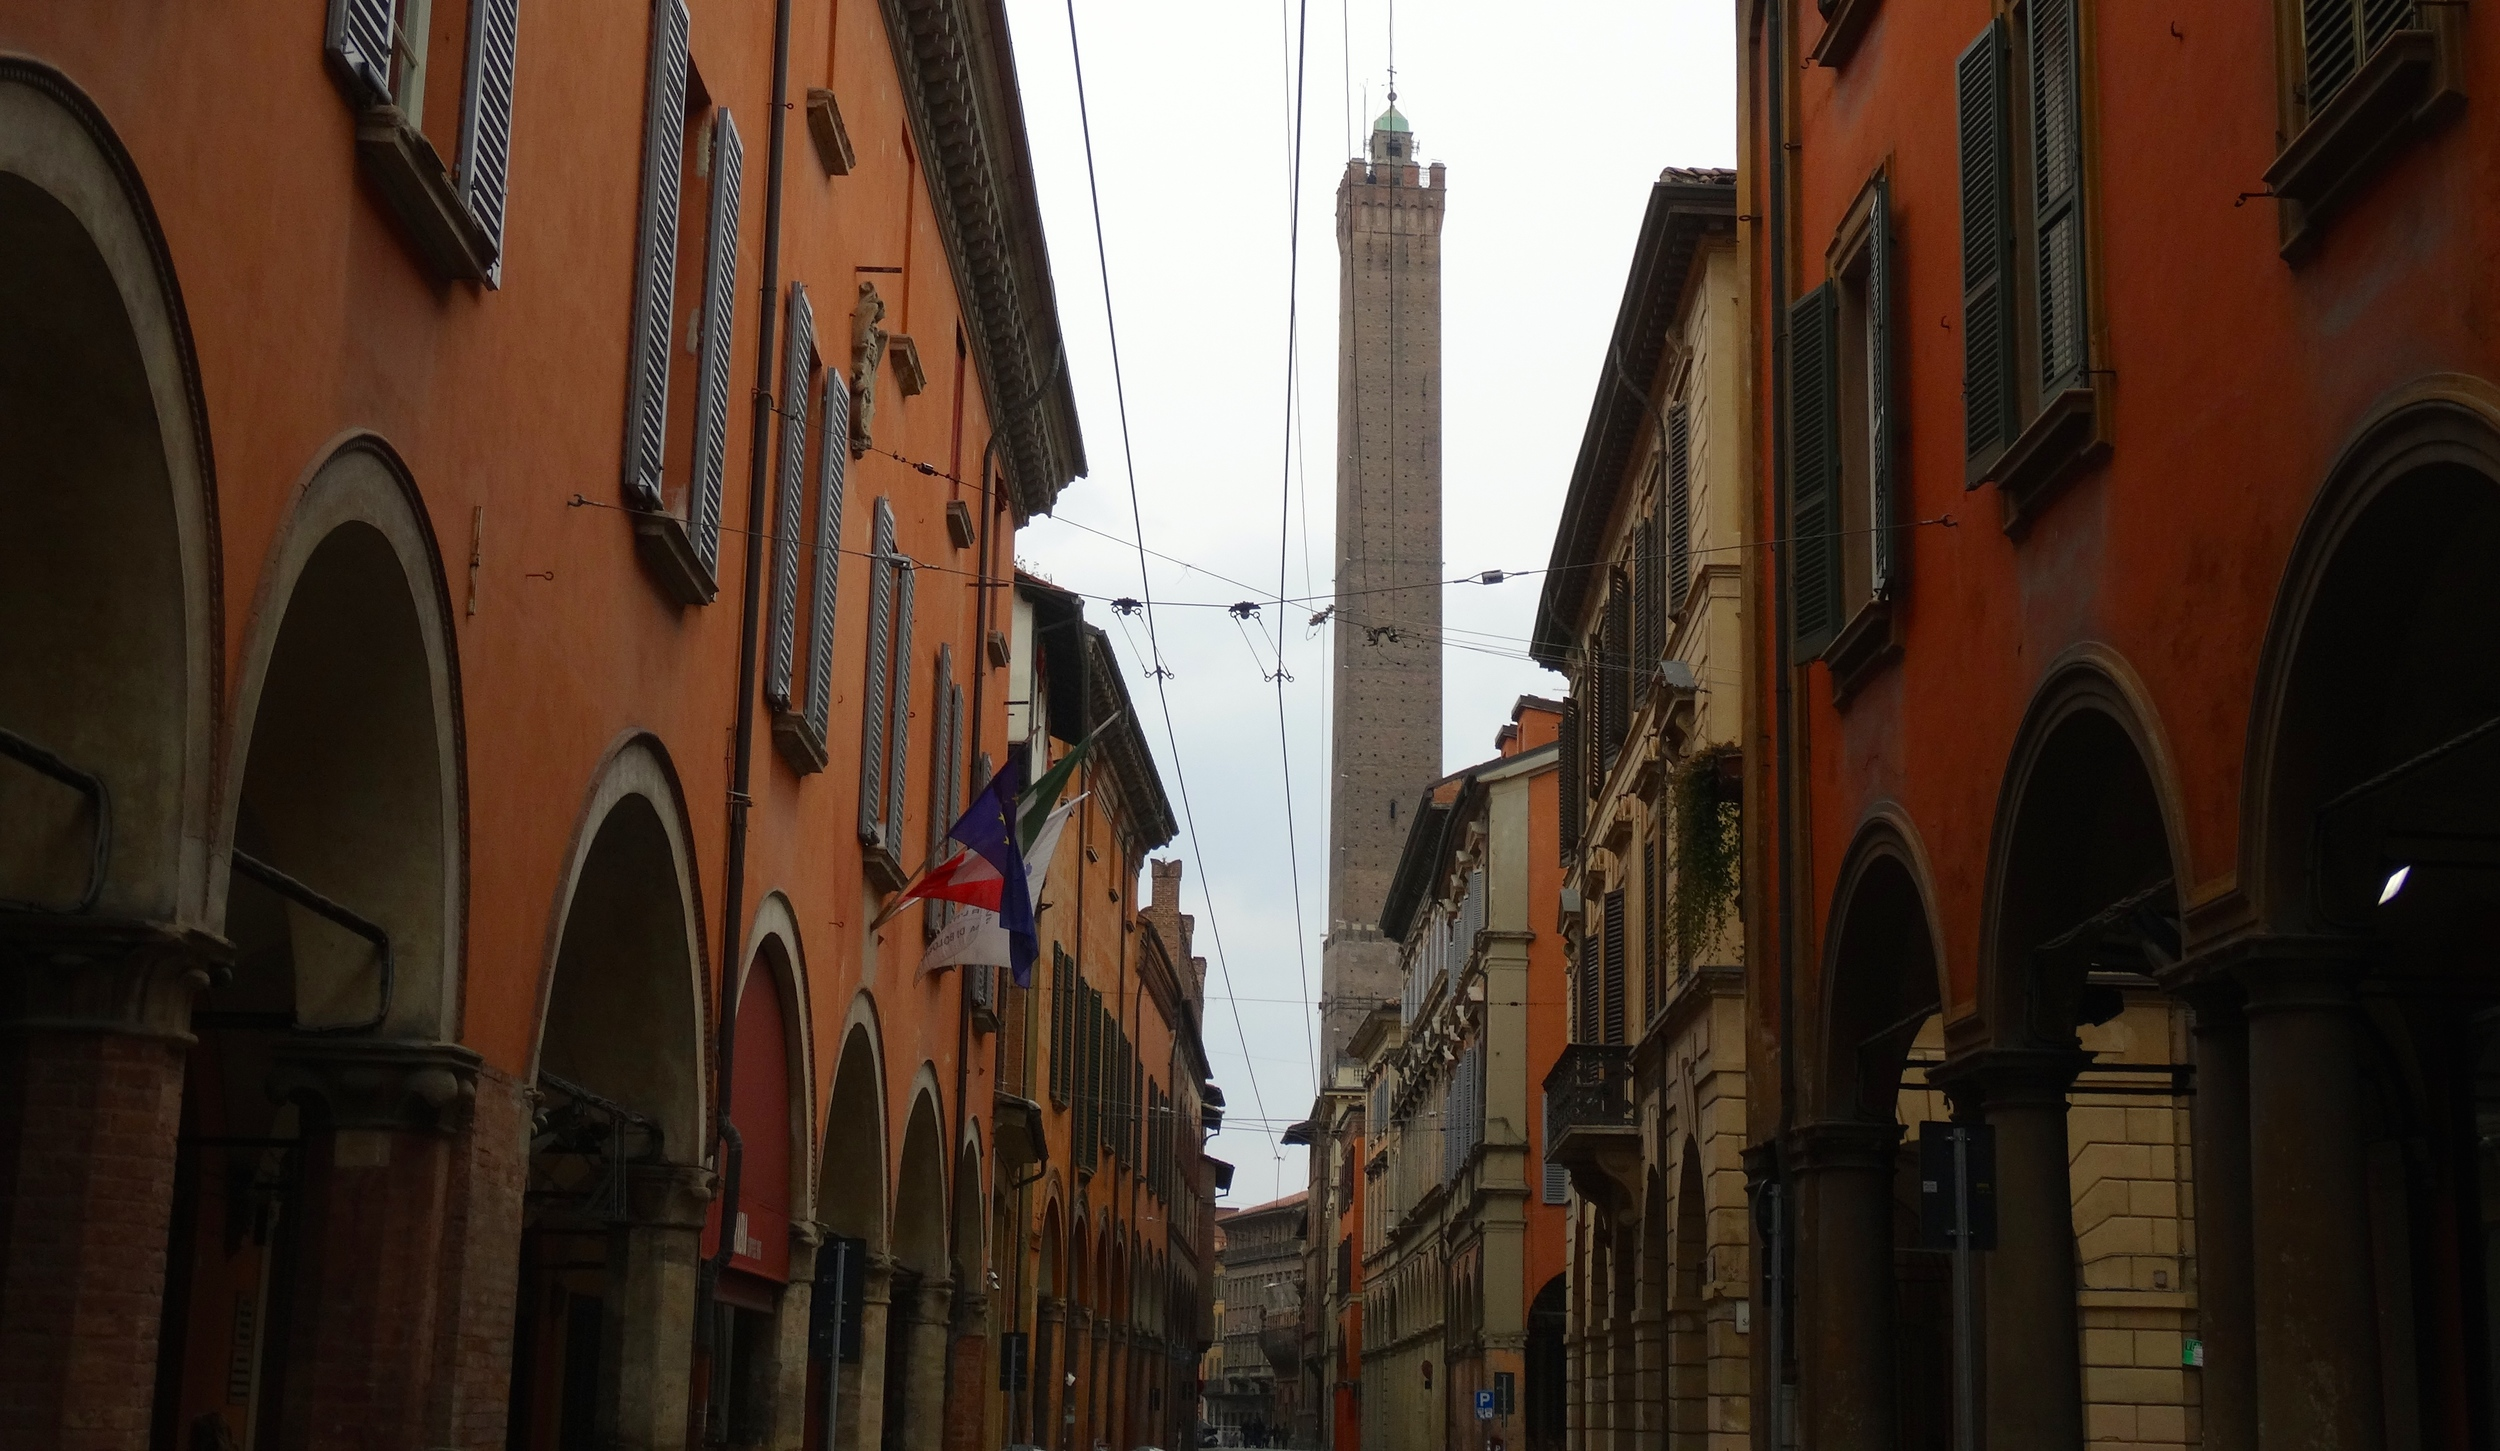 Porticos and tower in Bologna